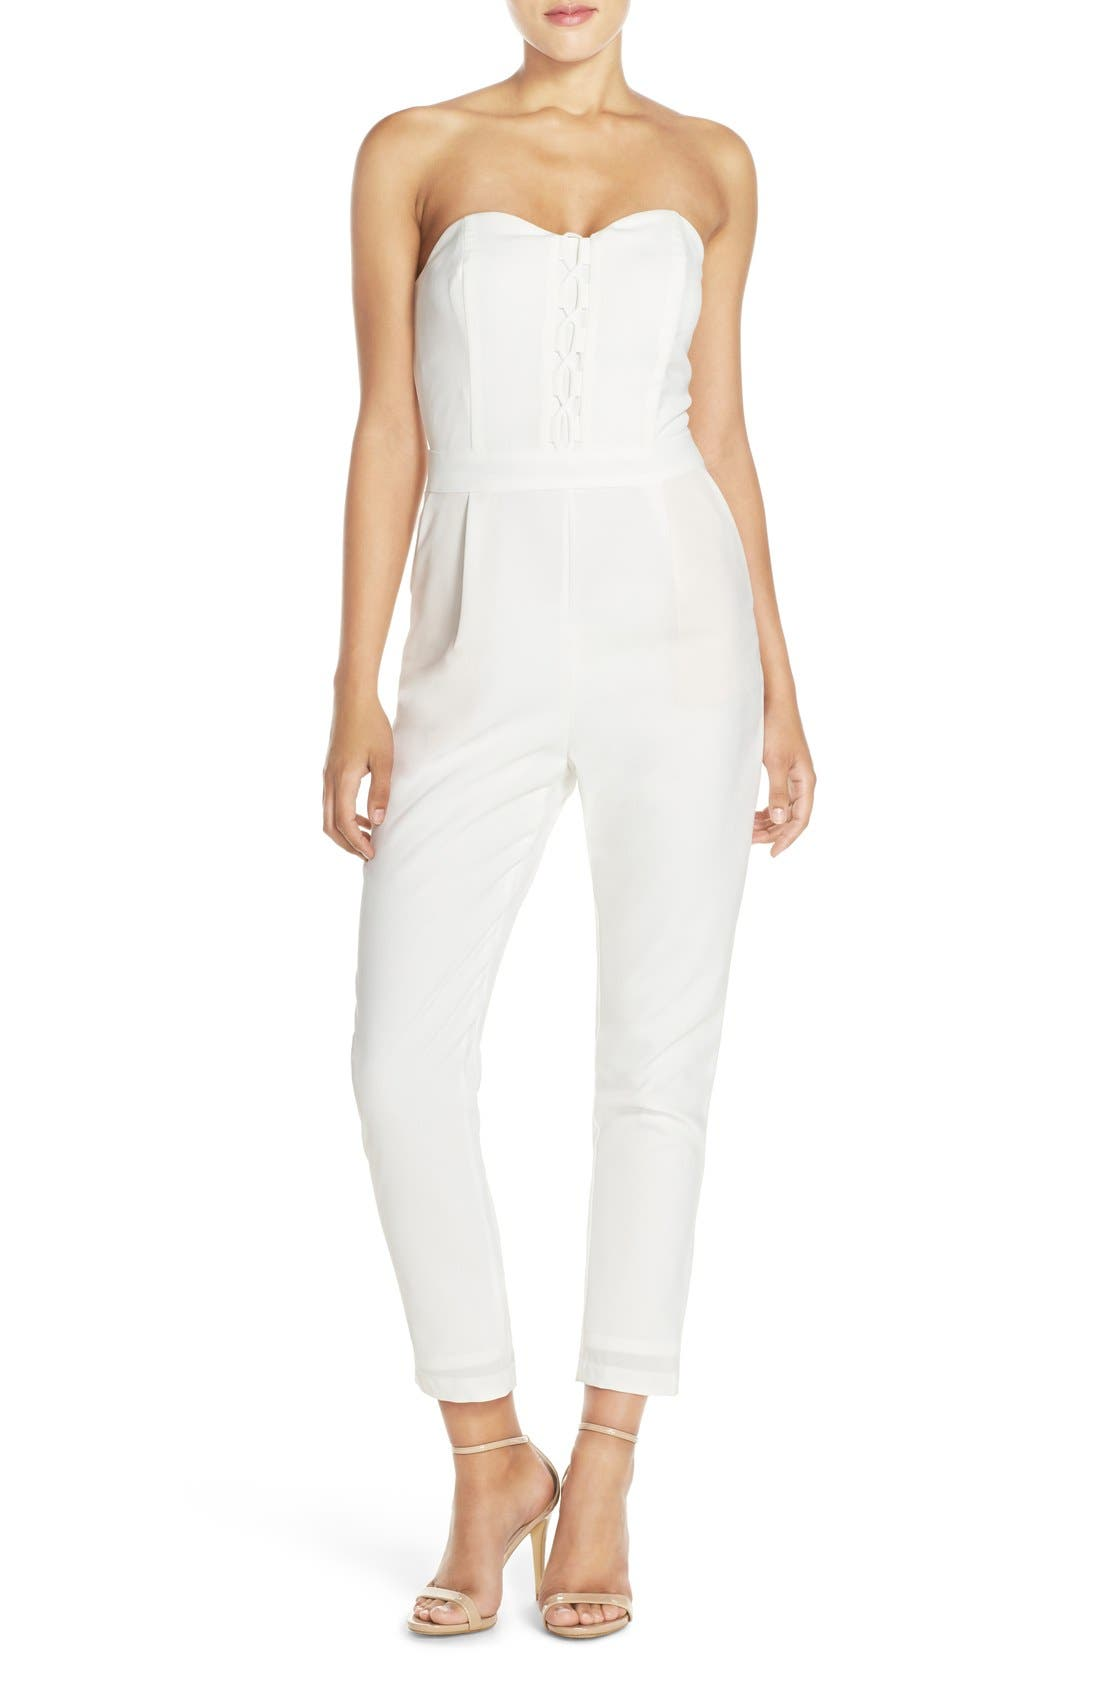 Alternate Image 1 Selected - Adelyn Rae Strapless Lace-Up Jumpsuit